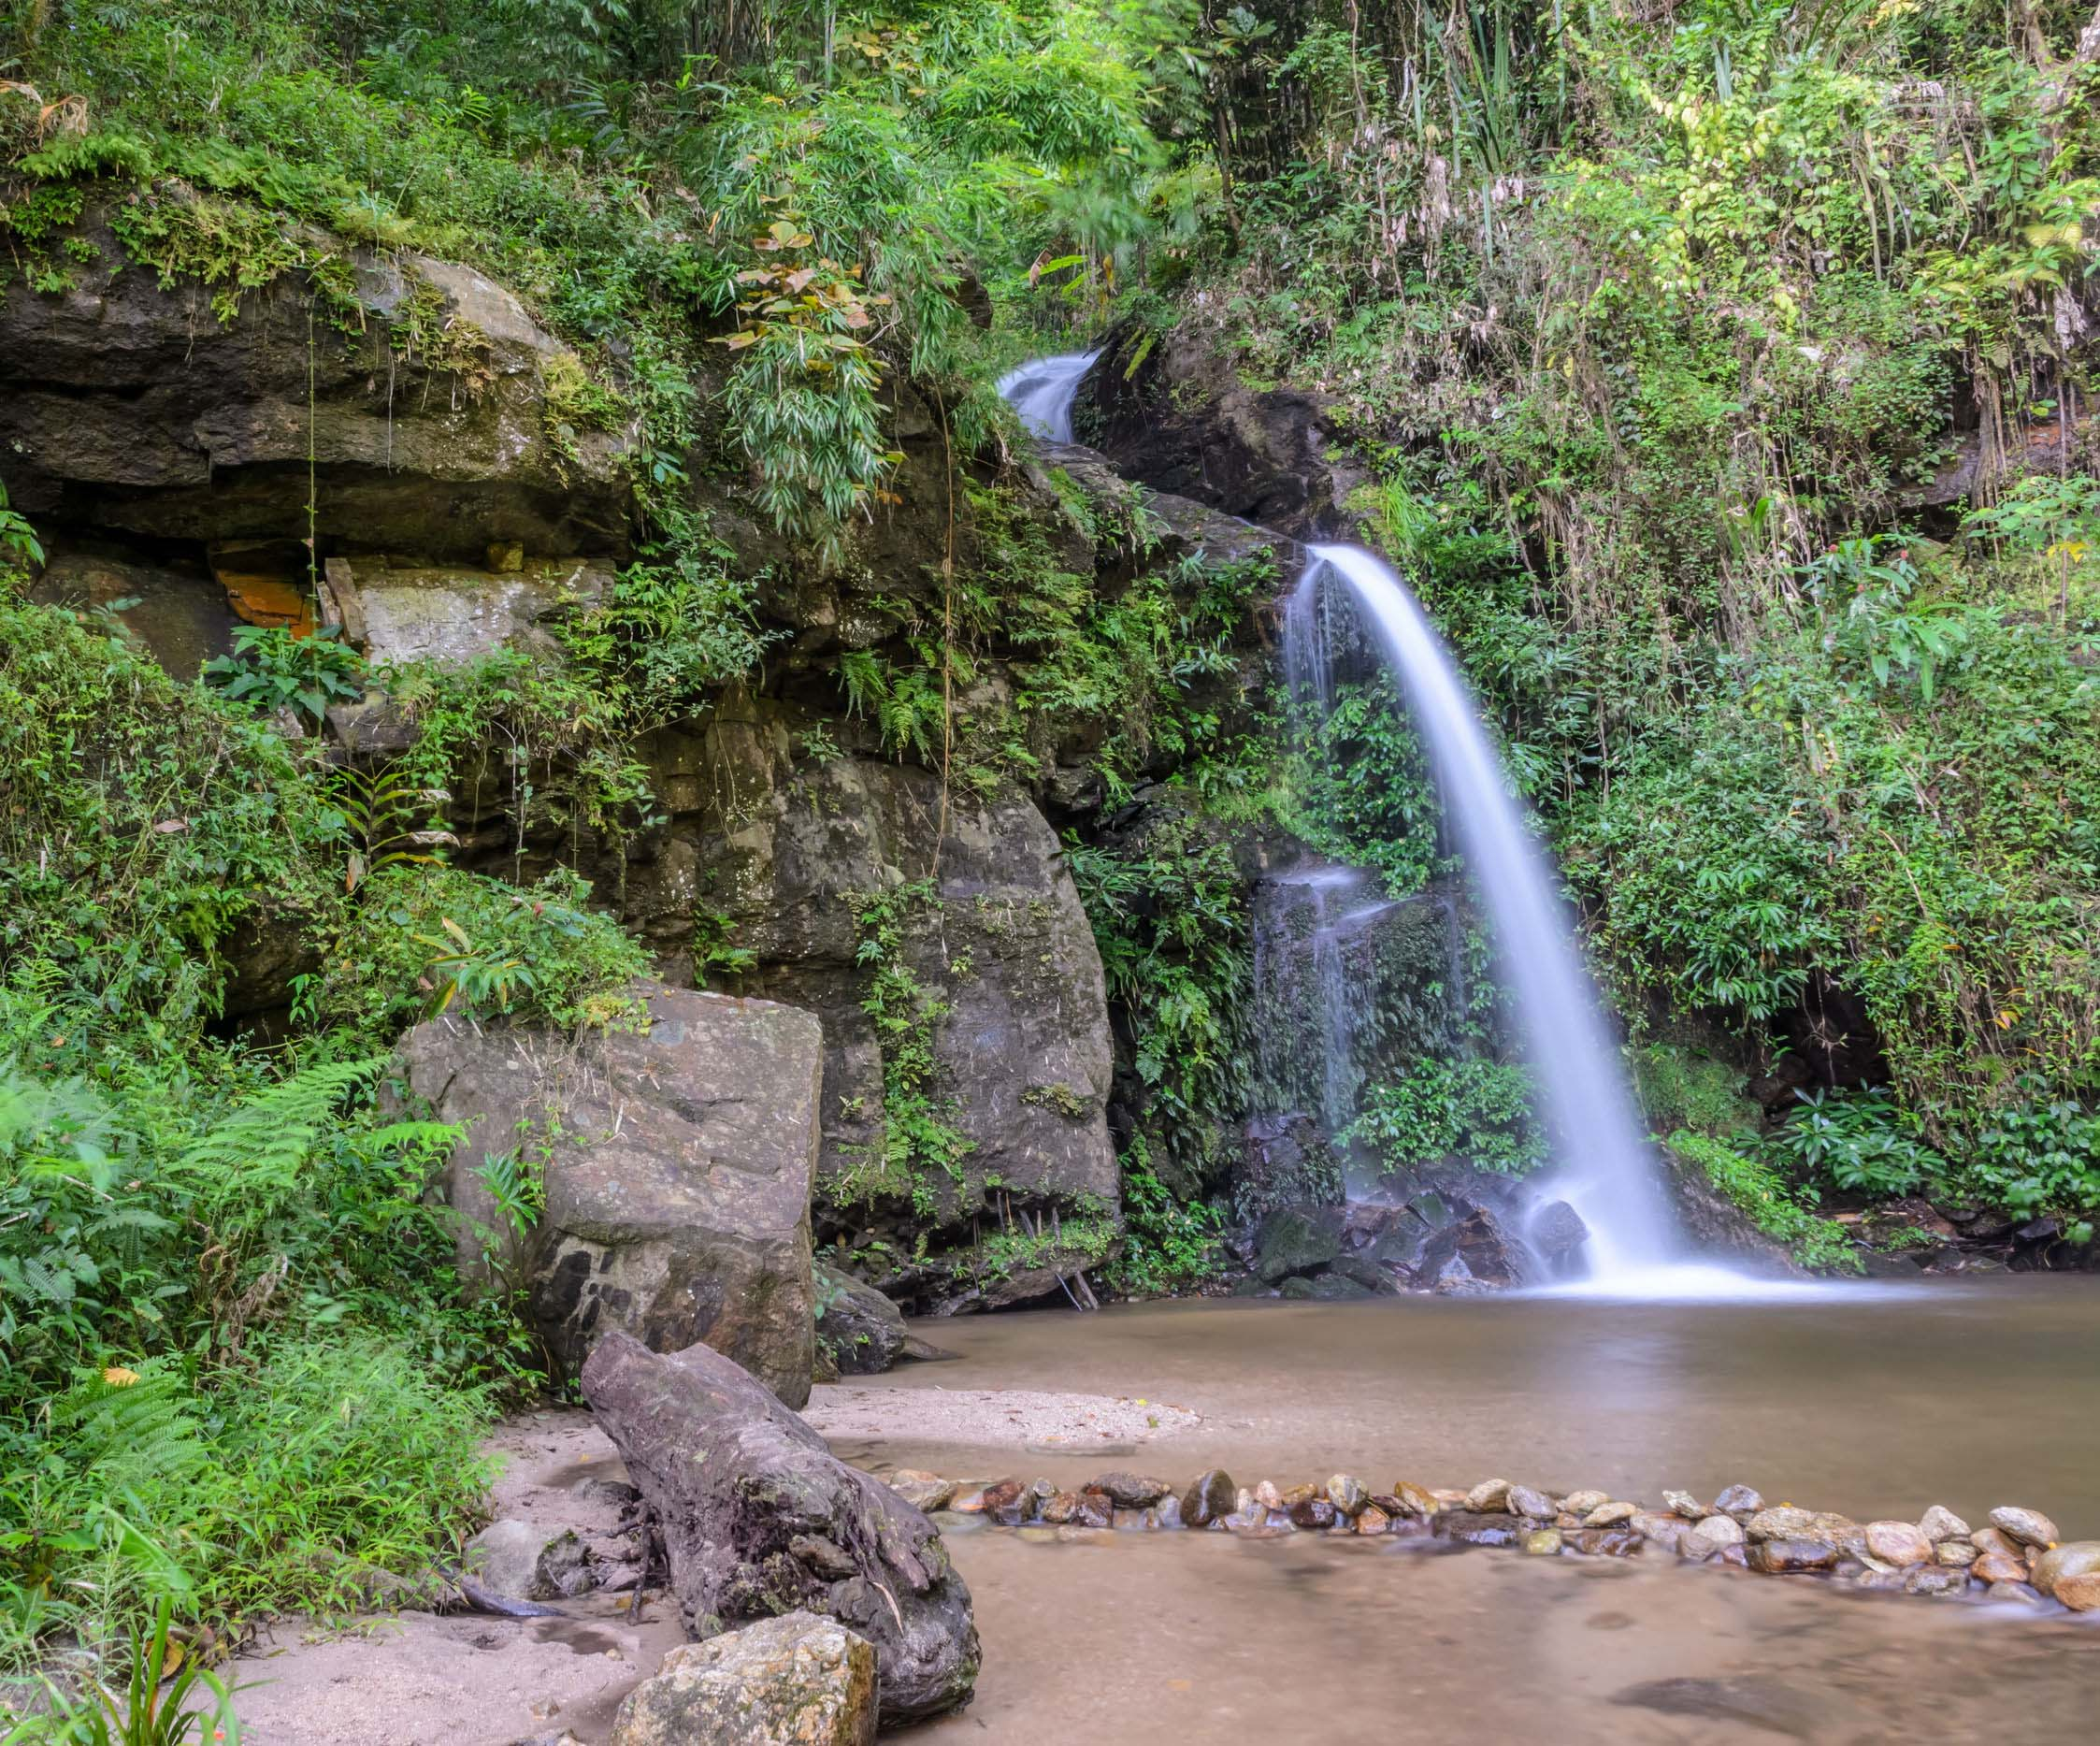 Evergreen forest waterfall on Doi Suthep mountain in Chiang Mai, Thailand